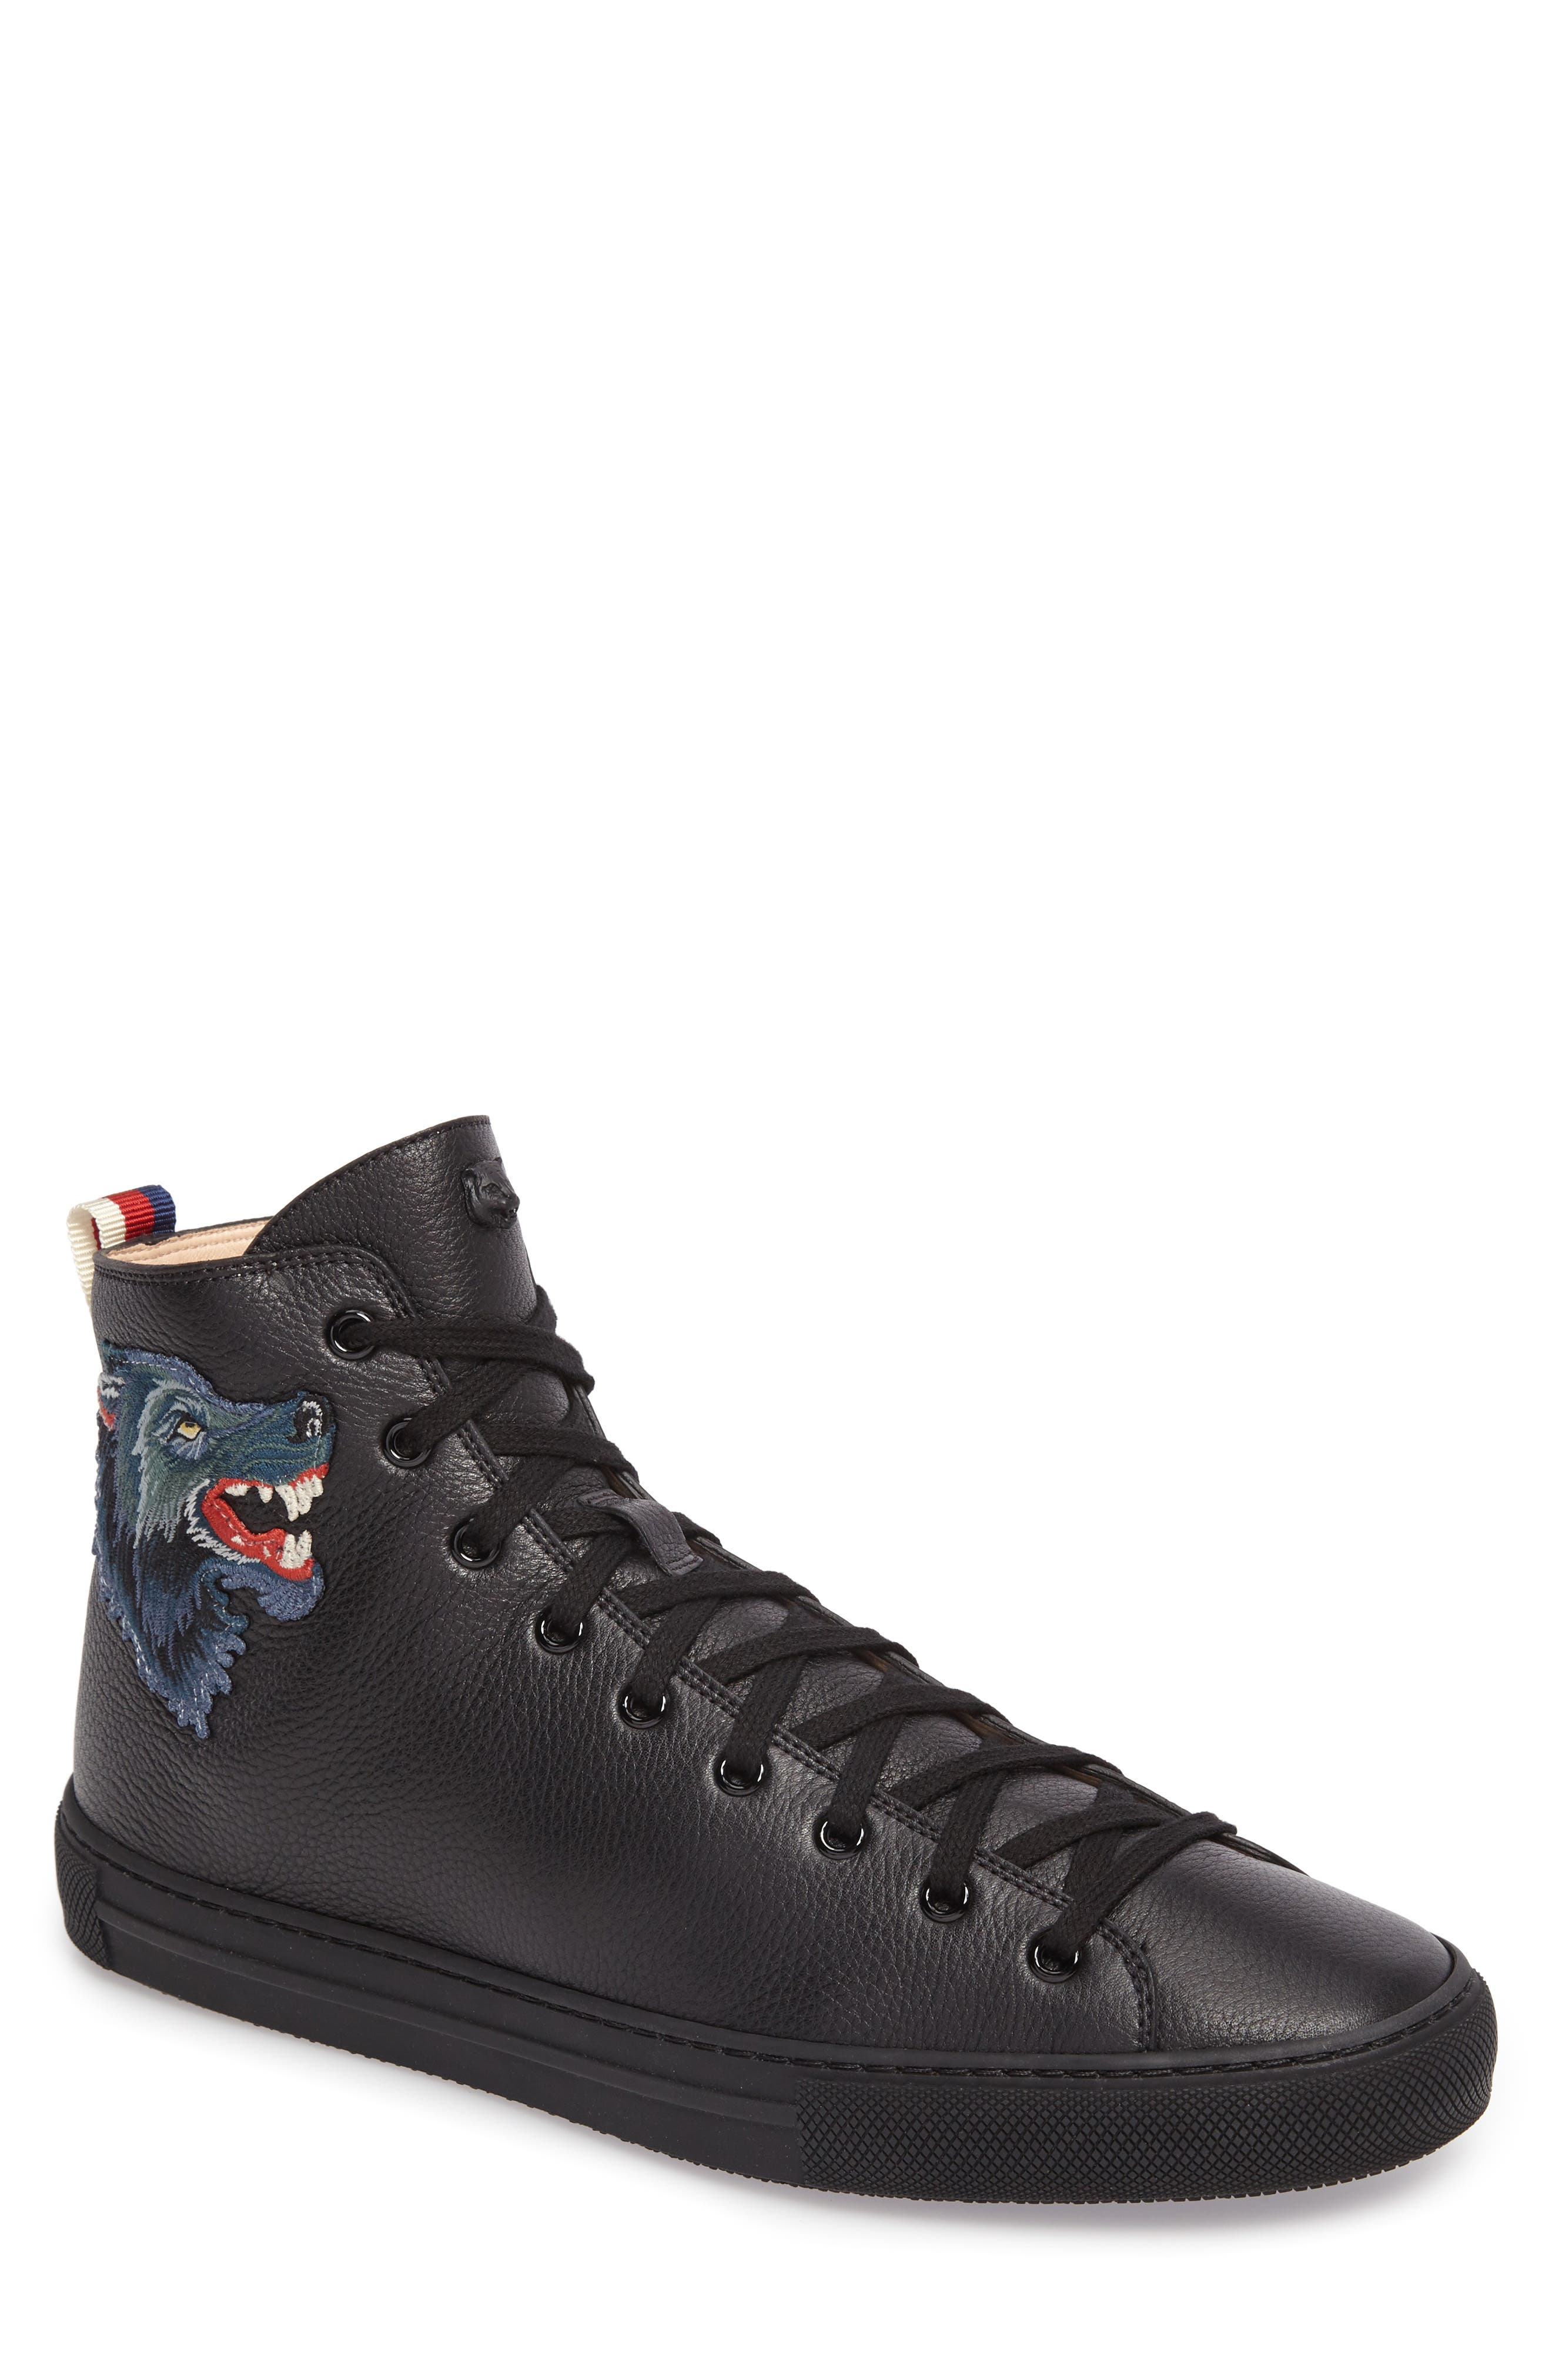 Major Angry Wolf Sneaker,                         Main,                         color, 005